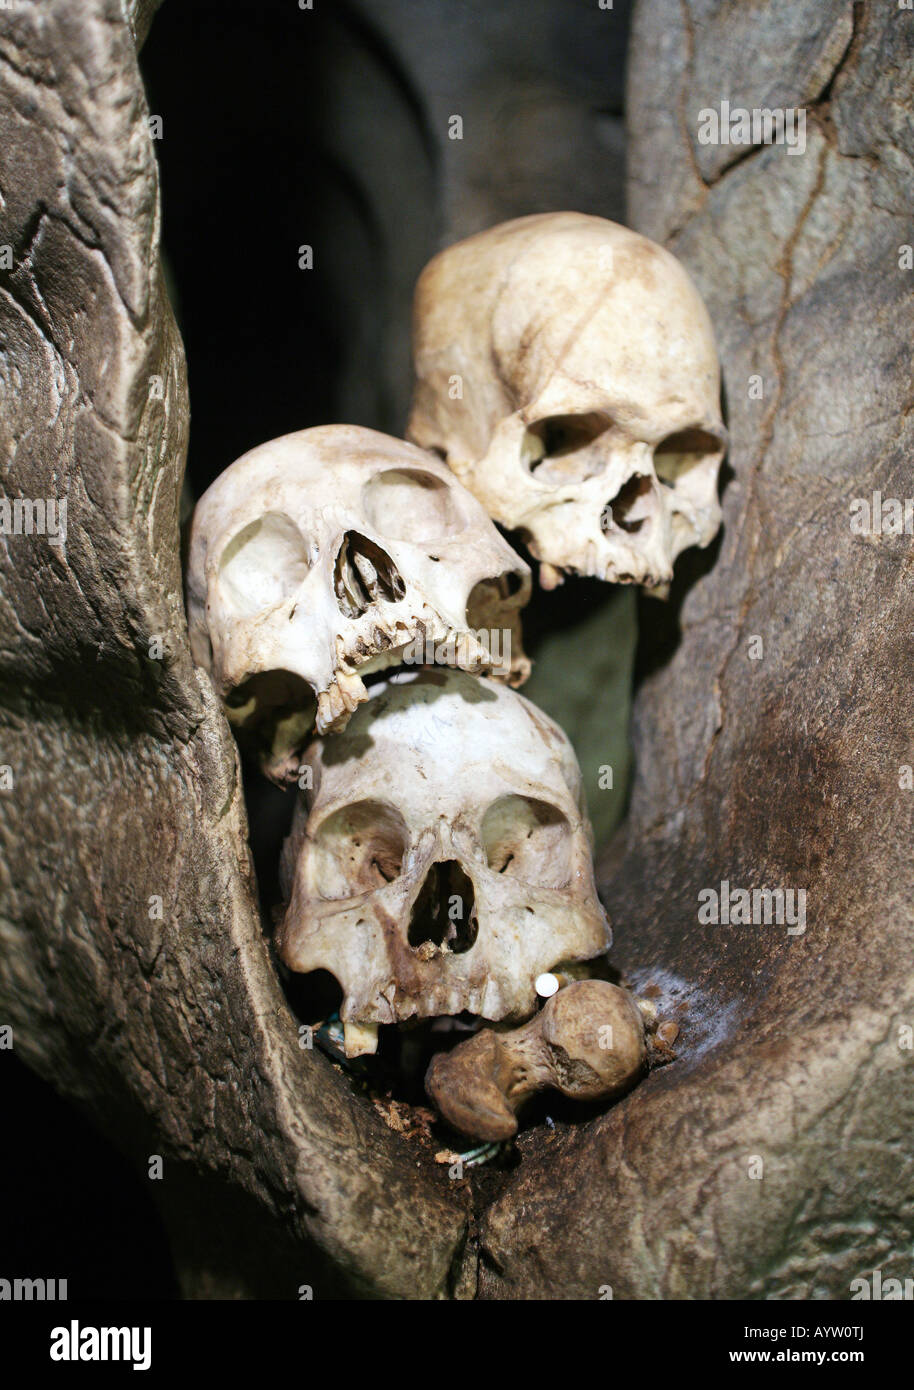 Indonesia: Skull in a burial chamber of the caves graves in Londa, Sulawesi Island - Stock Image